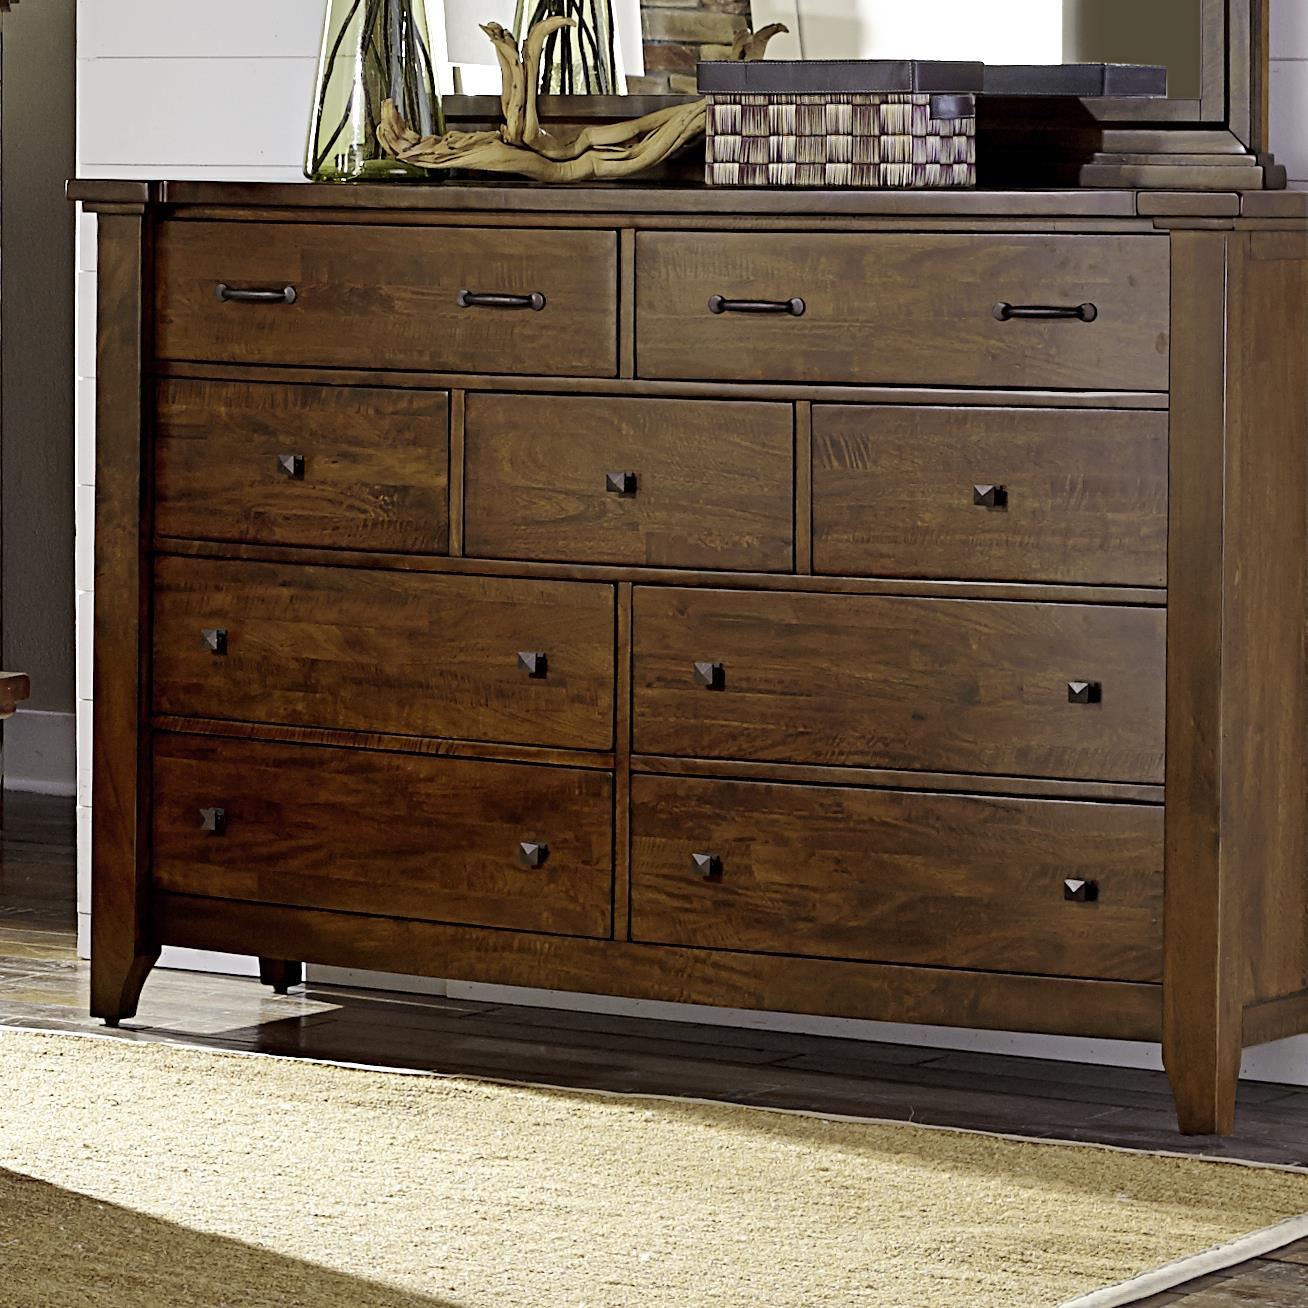 Napa Furniture Designs Whistler Retreat 9 Drawer Chest - Item Number: 70-12